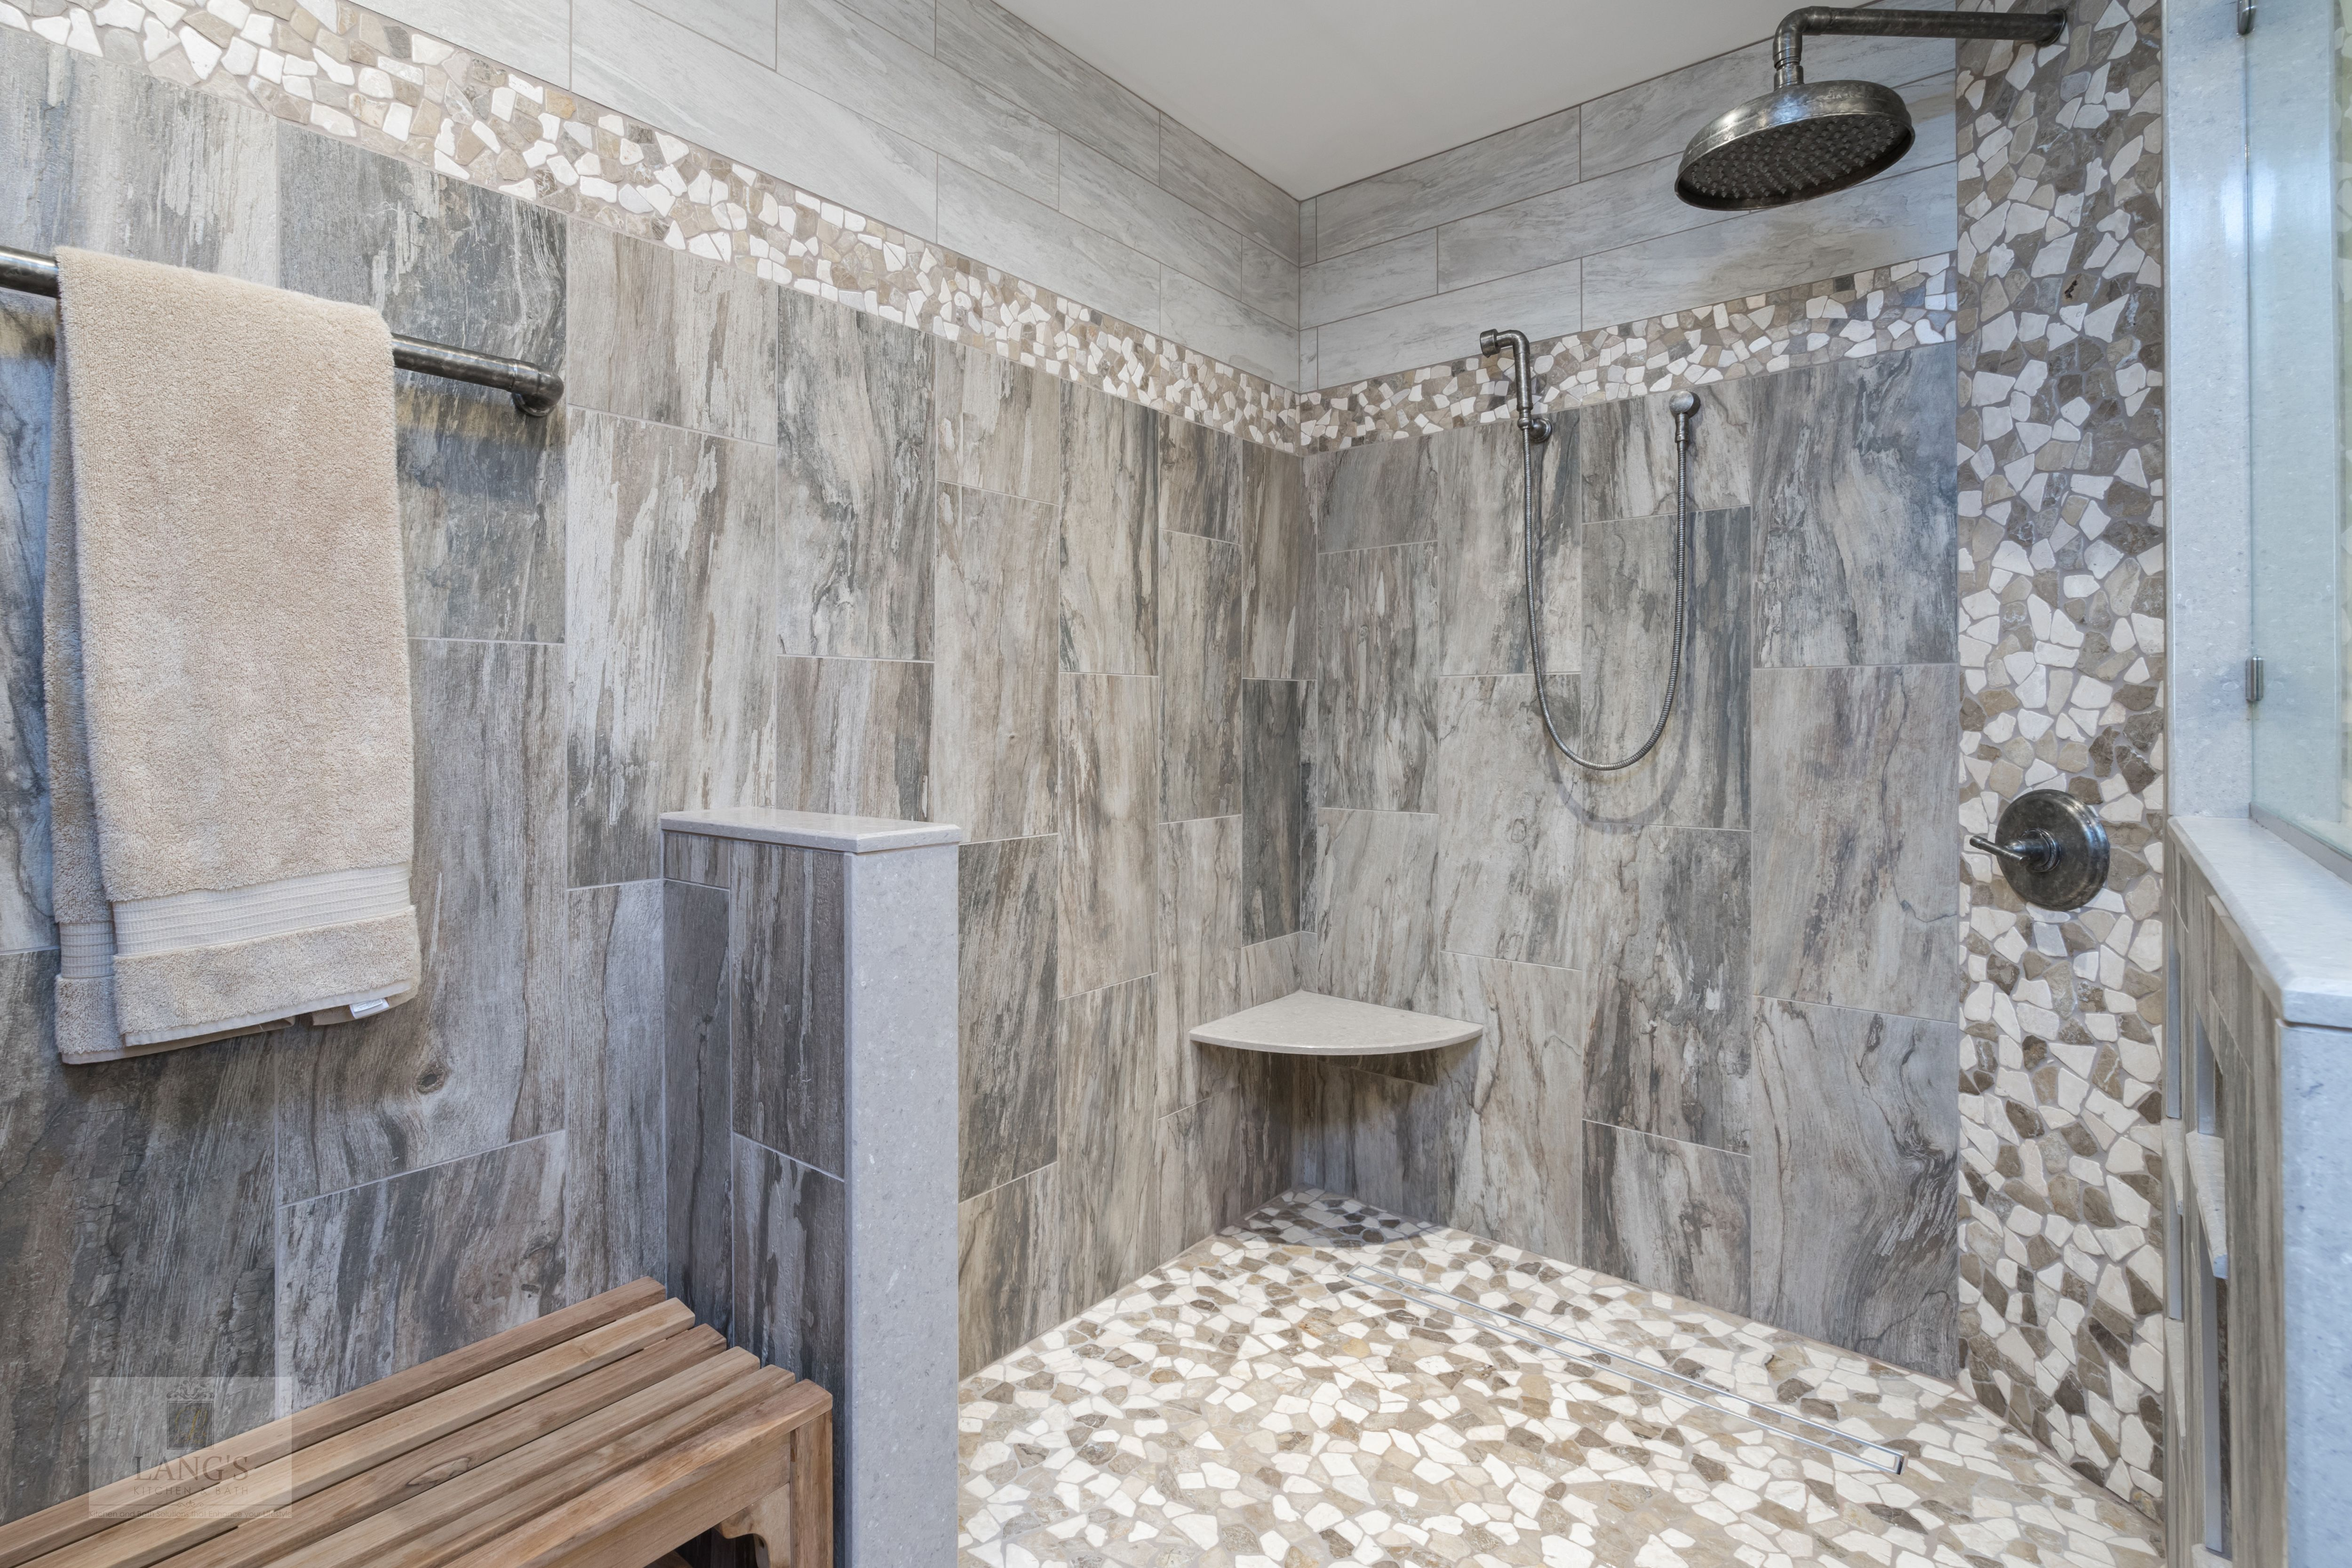 This Bathroom Design Combines Rustic And Industrial Features In A Space That Is Stylish And Relaxing Kitchen And Bath Design Shower Floor Remodeling Companies